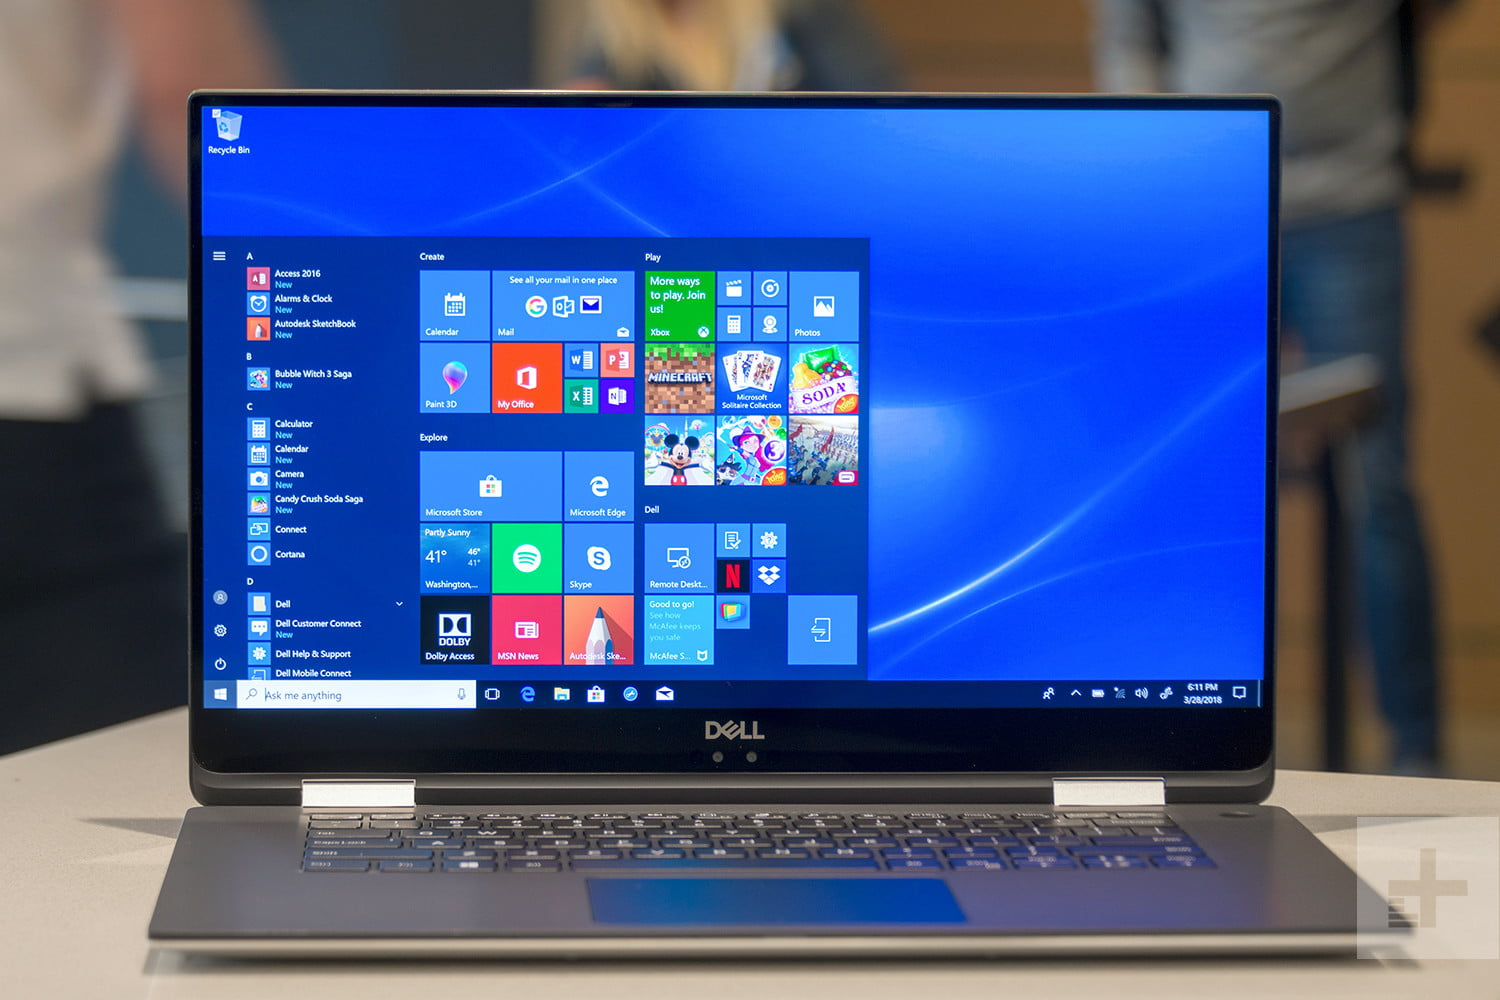 https://media.techz.vn/upload/2019/05/16/image-1557979281-dell-xps-15-2-in-1-review-front-display.jpg